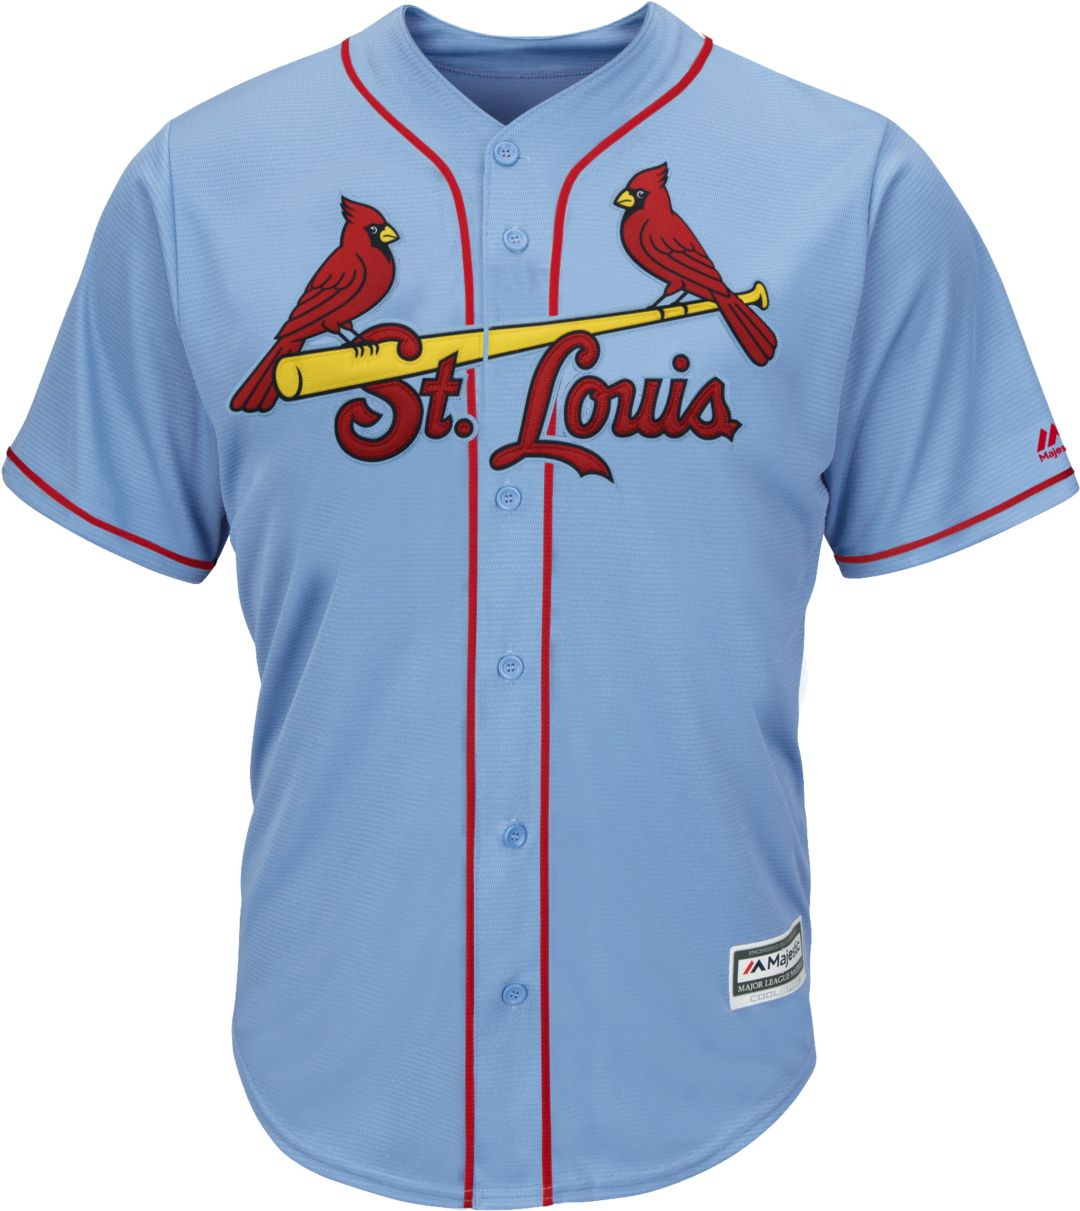 4b39ae3a Majestic Men's Replica St. Louis Cardinals Paul Goldschmidt #46 Cool Base  Alternate Light Blue Jersey